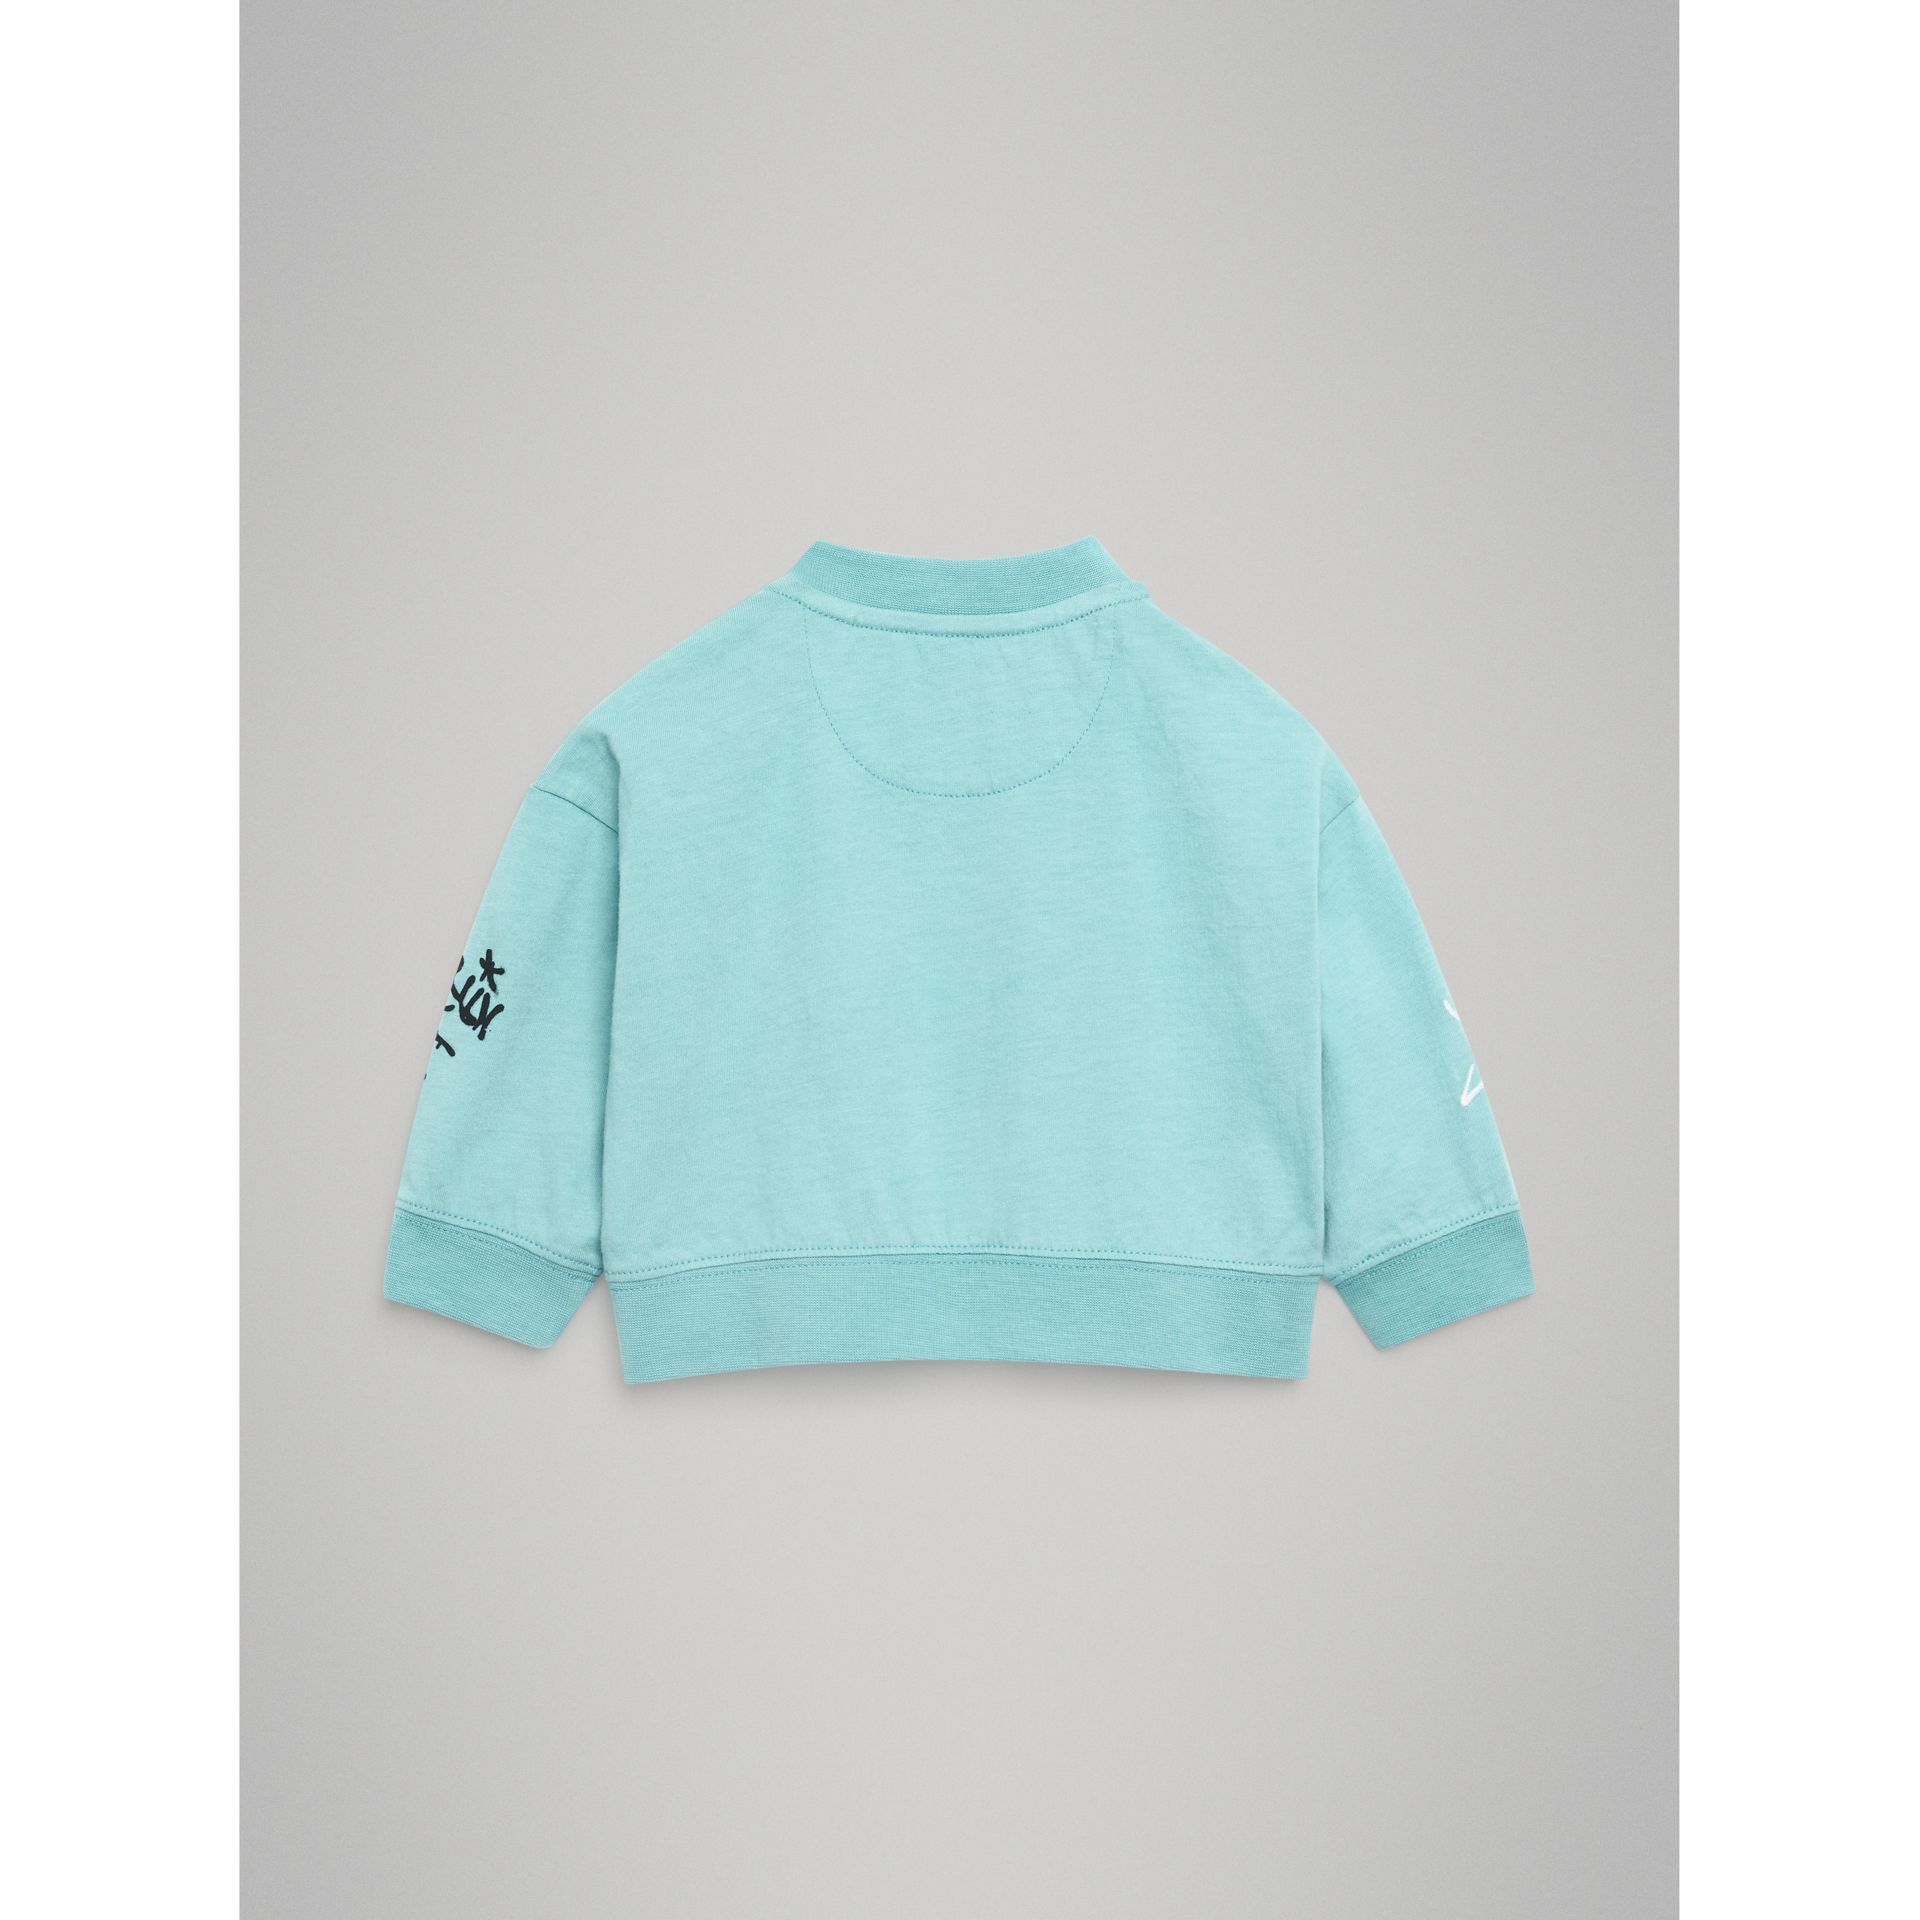 Forever is Now Print Cotton Sweatshirt in Turquoise - Children | Burberry - gallery image 3